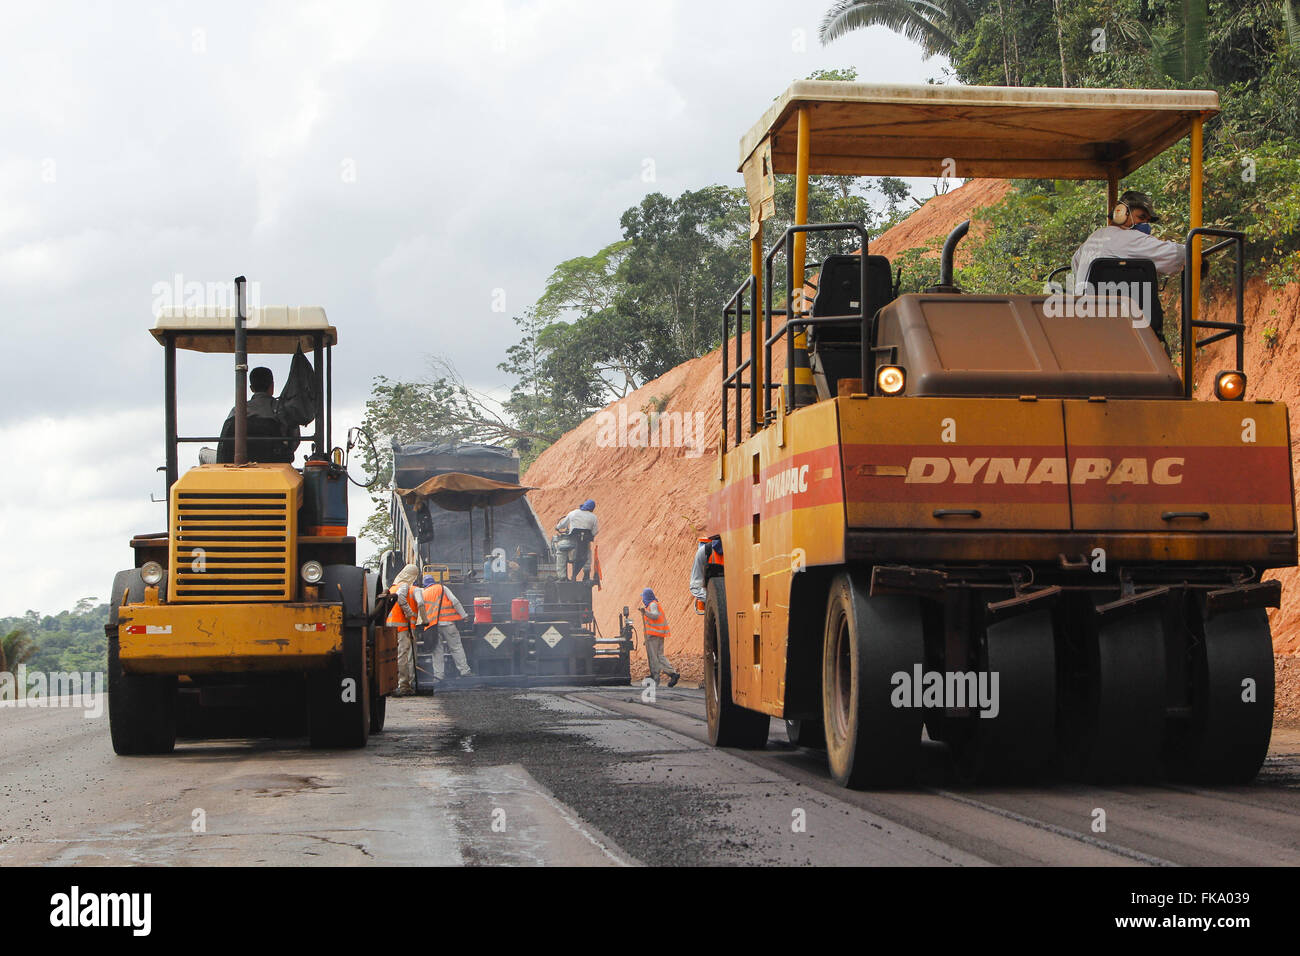 Rollers into works of paving on Highway Cuiaba-Santarem BR 163 - Stock Image